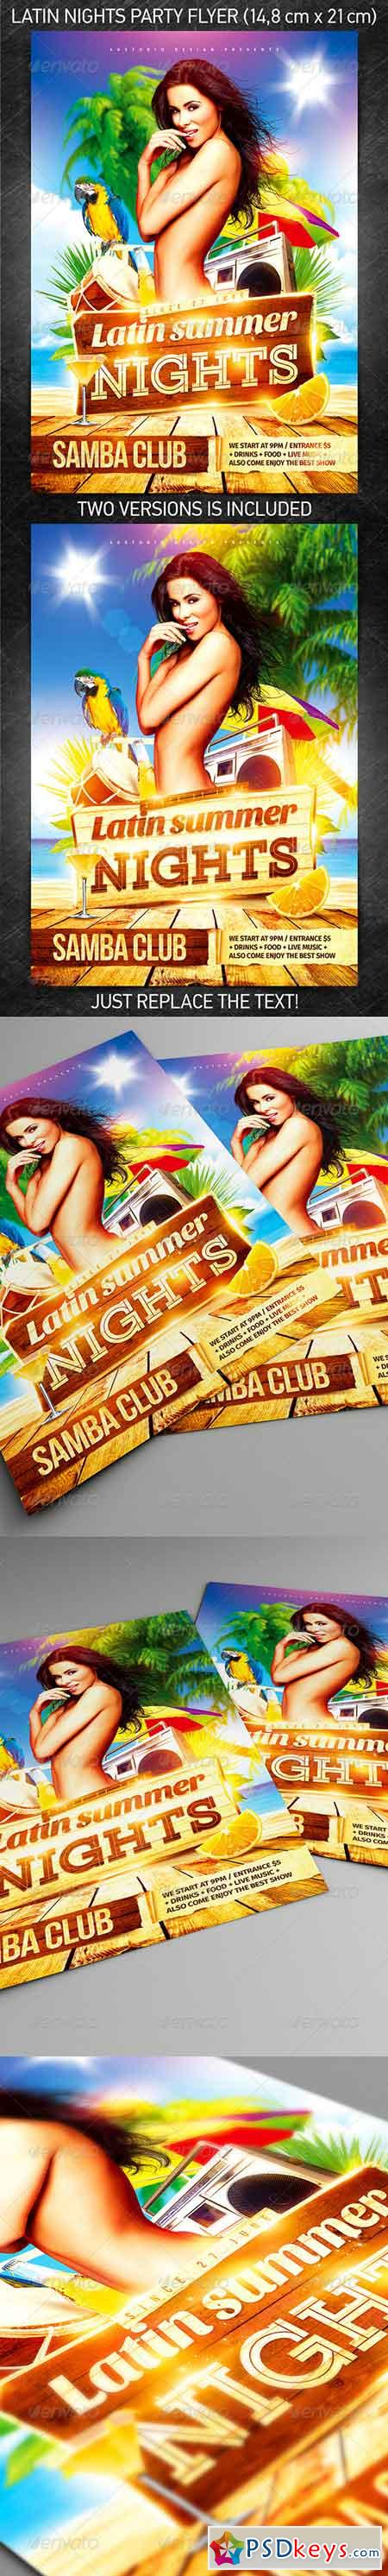 Latin Nights Party Flyer 7820146